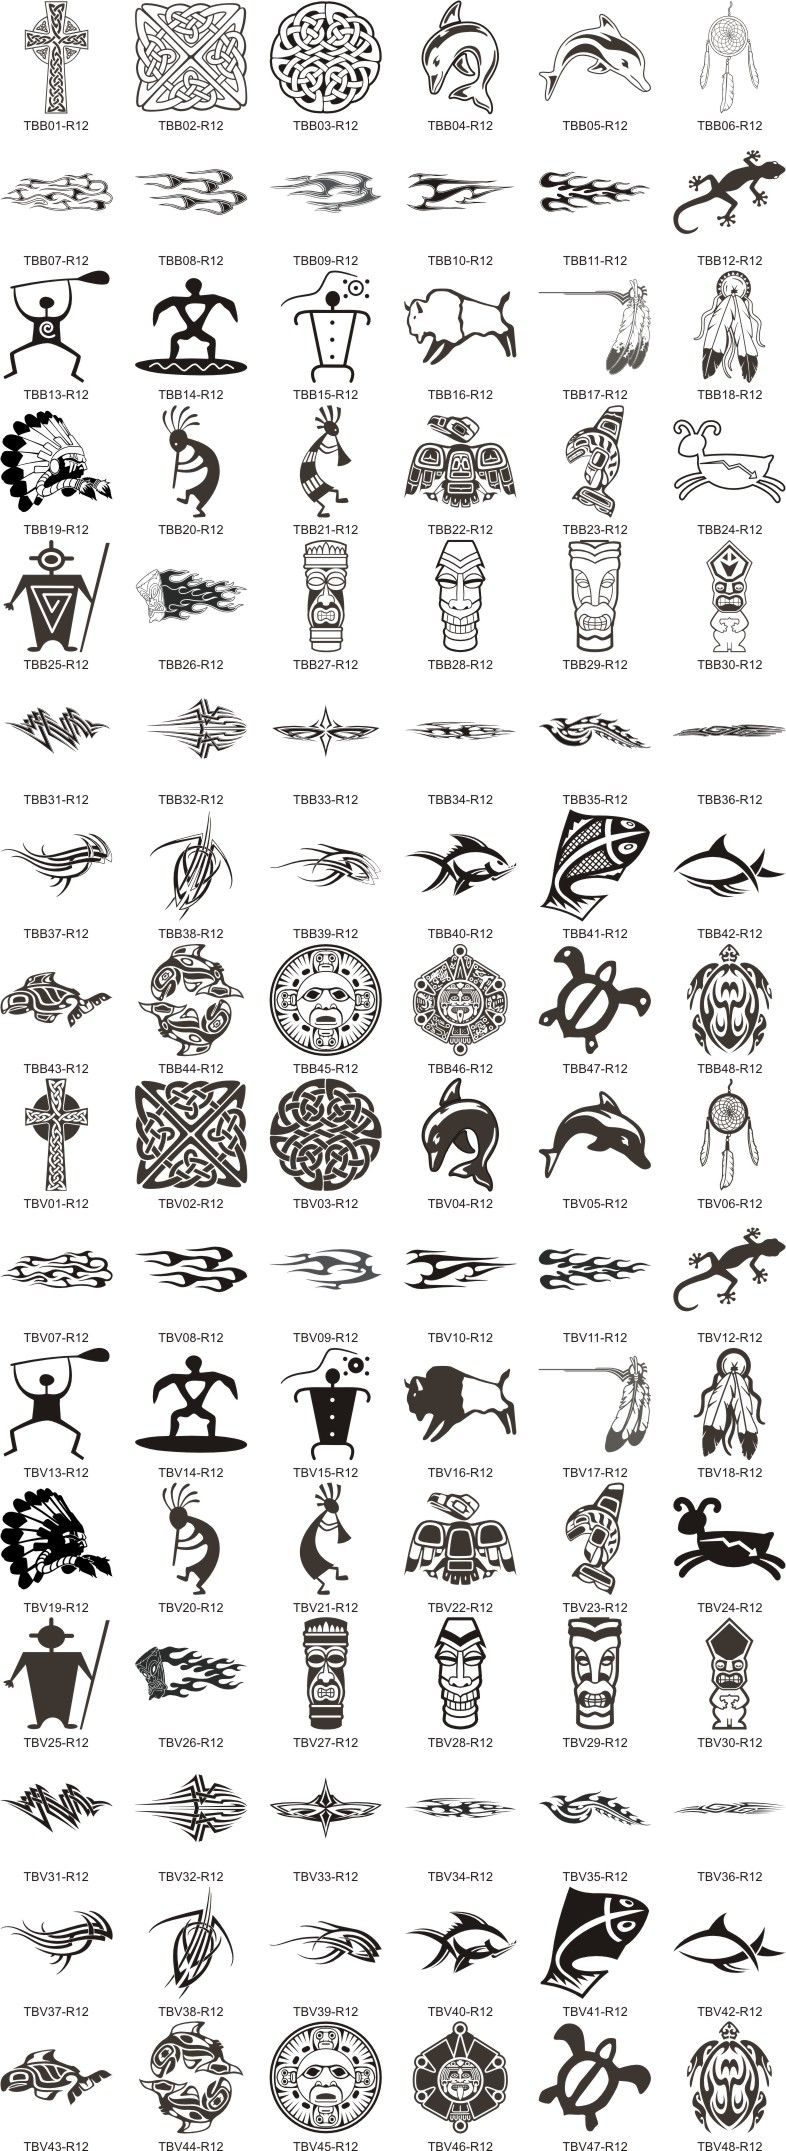 Maori Tattoo Meanings And Symbols: Symbols And Their Meanings